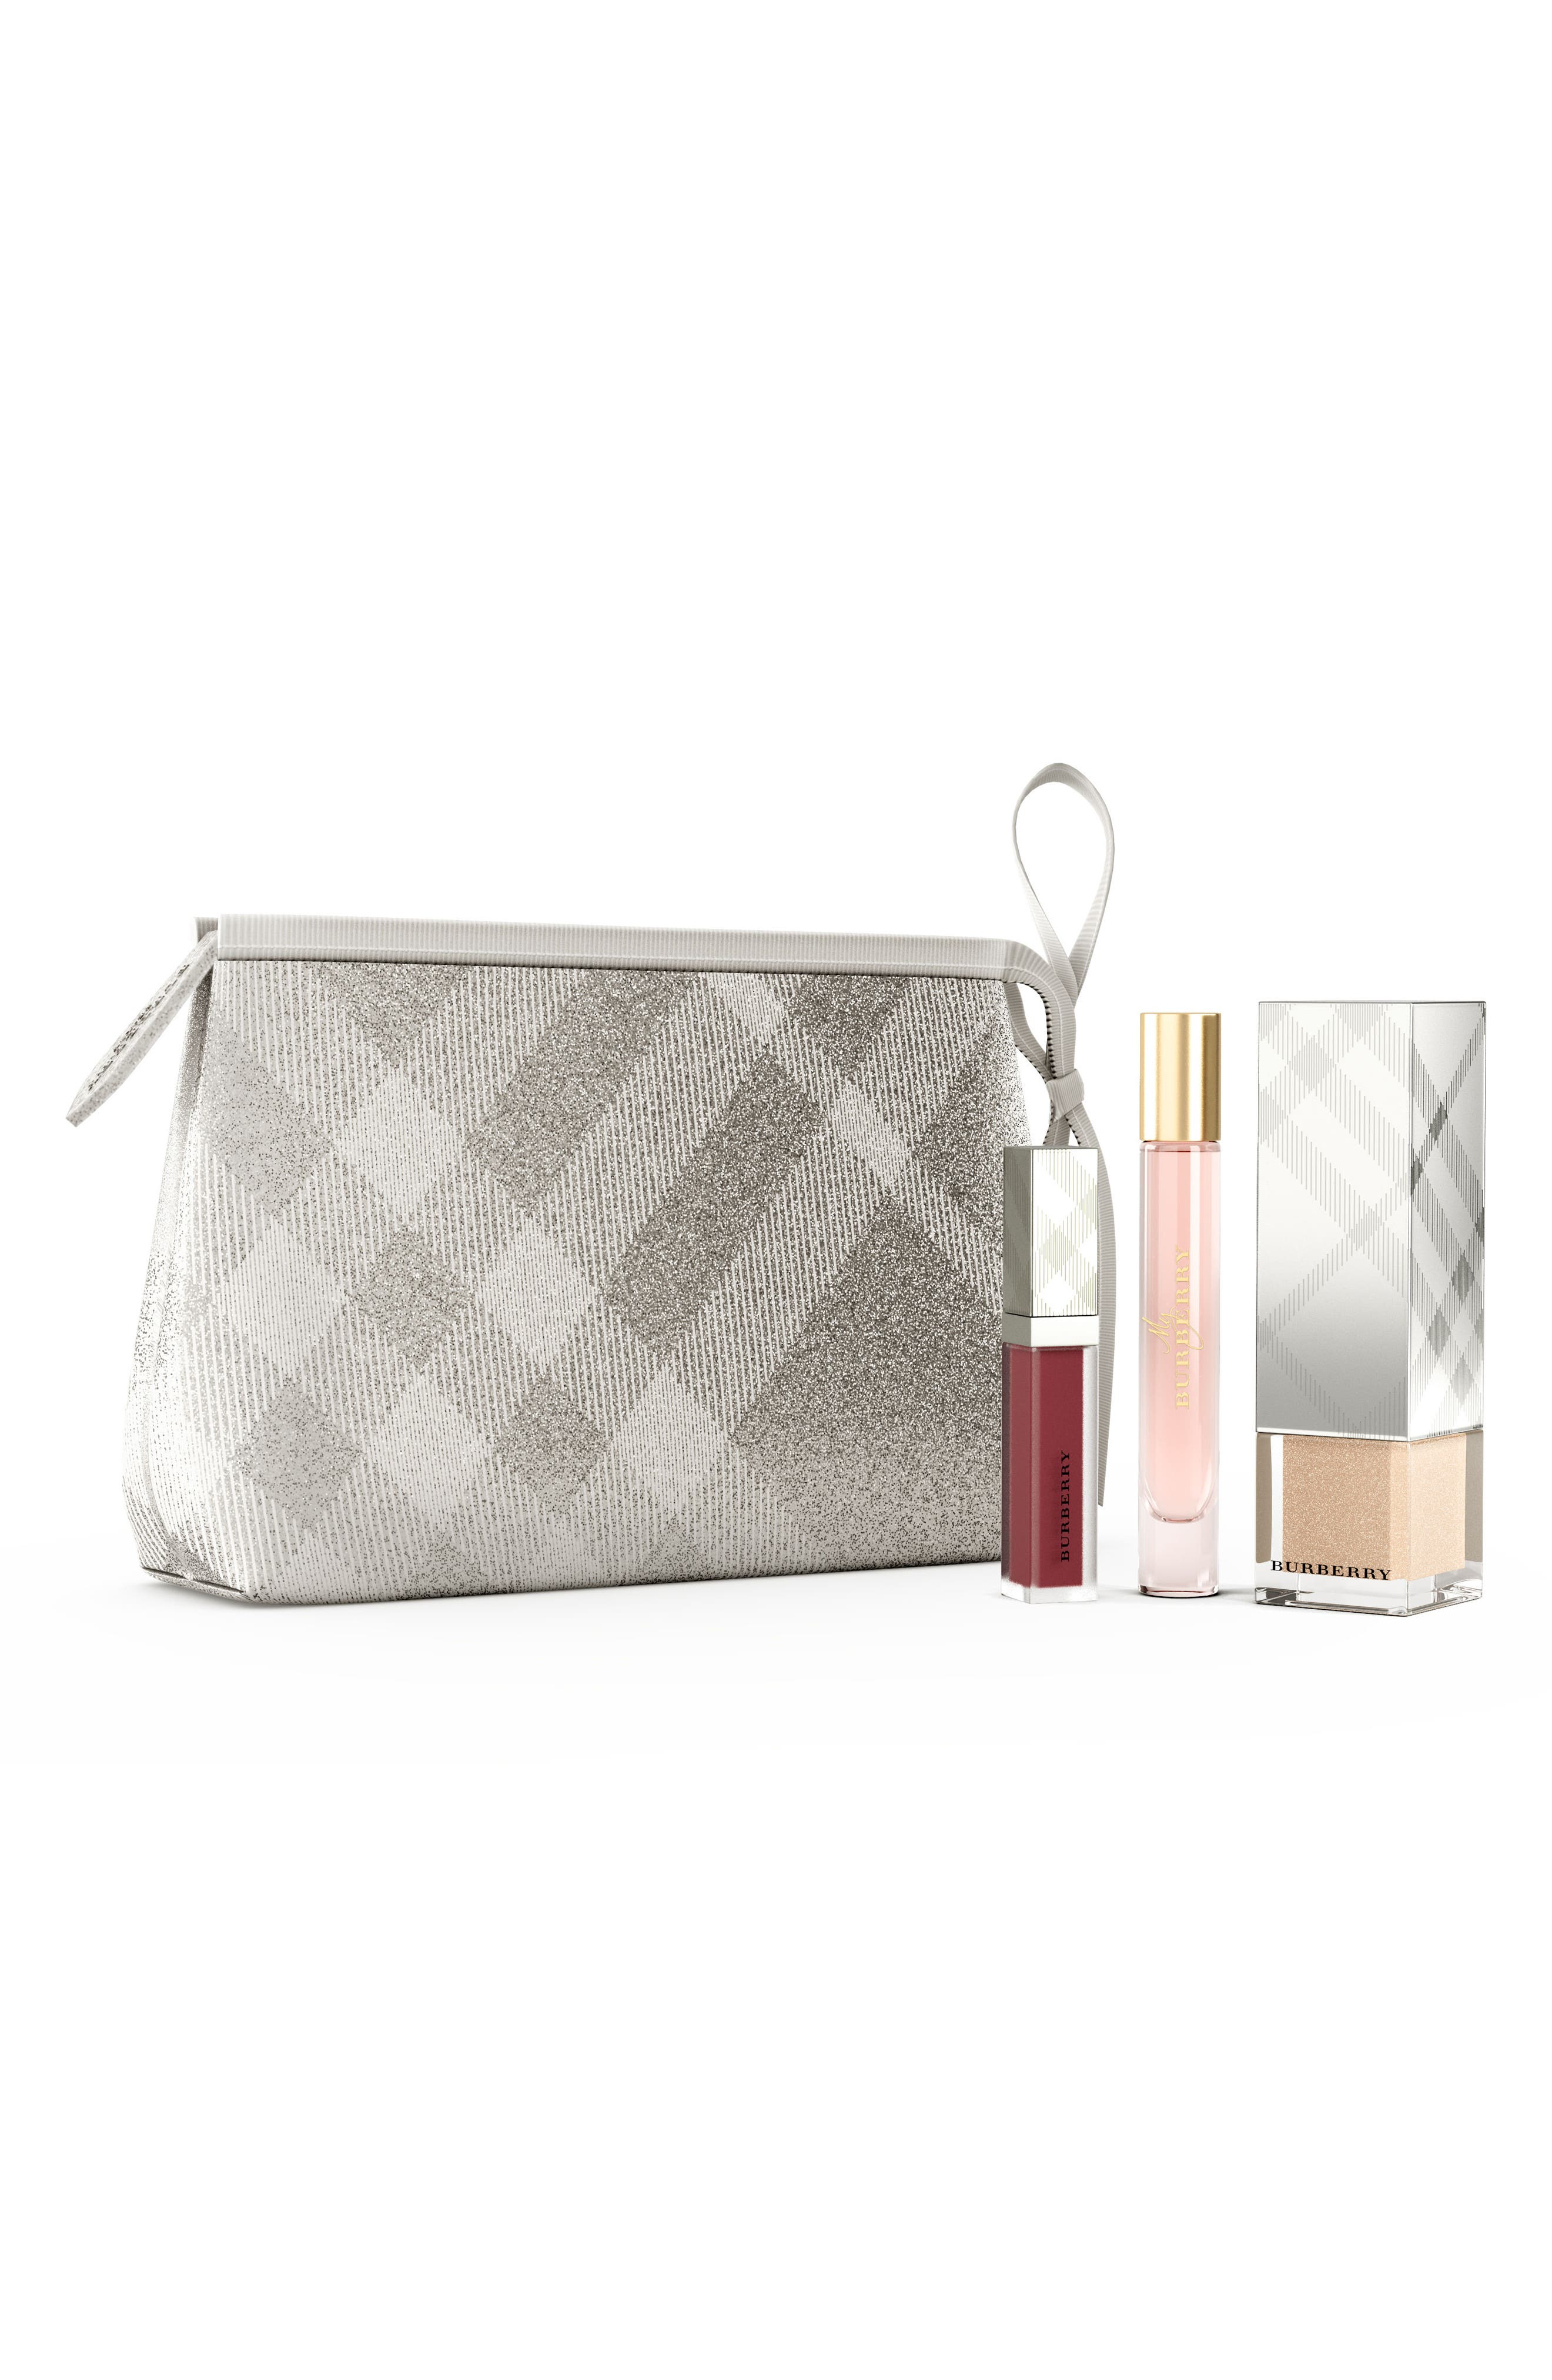 Burberry Beauty Festive Beauty Pouch Collection (Limited Edition)